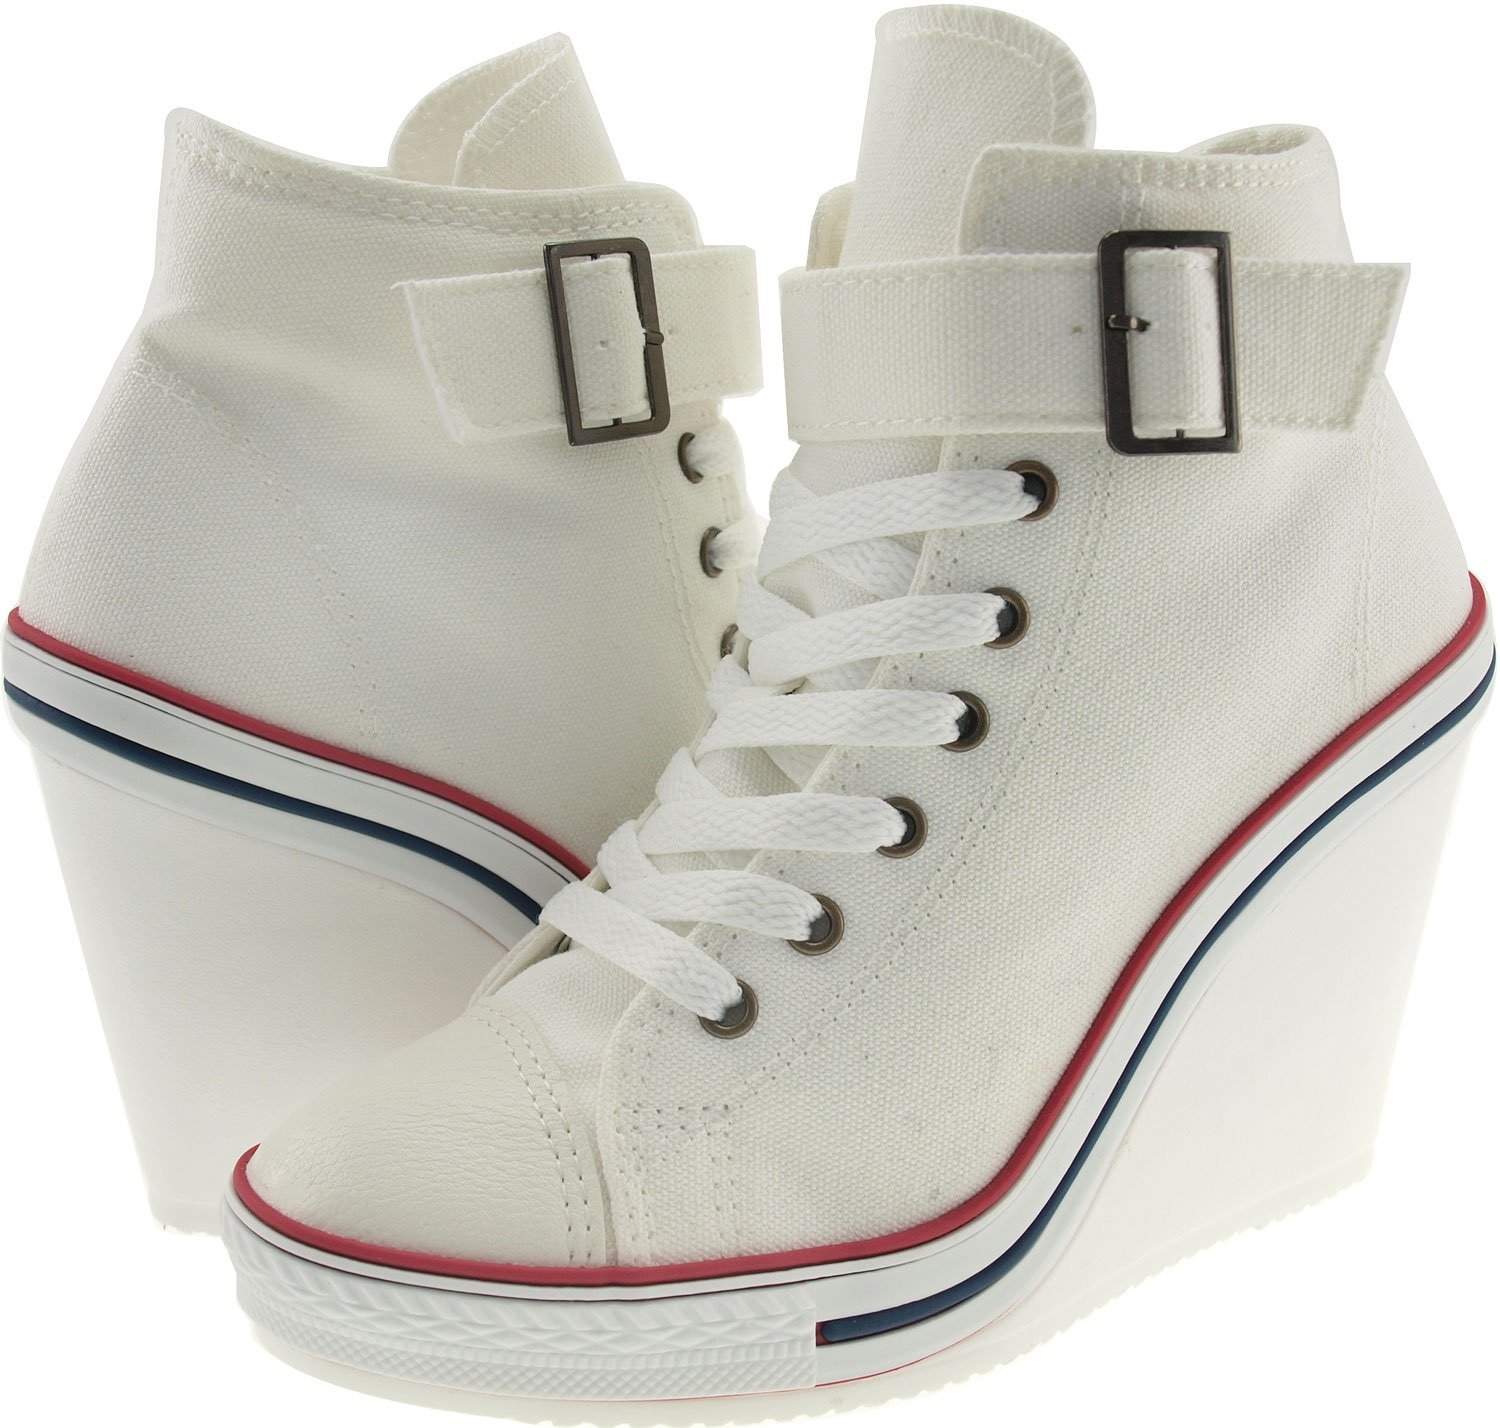 669ab64d8659 Maxstar Women B07DL5GFH5 s 777 Sneakers Buckle One Buckle Strap Canvas High Wedge  Heel Sneakers White df4698a - seo-serf.online